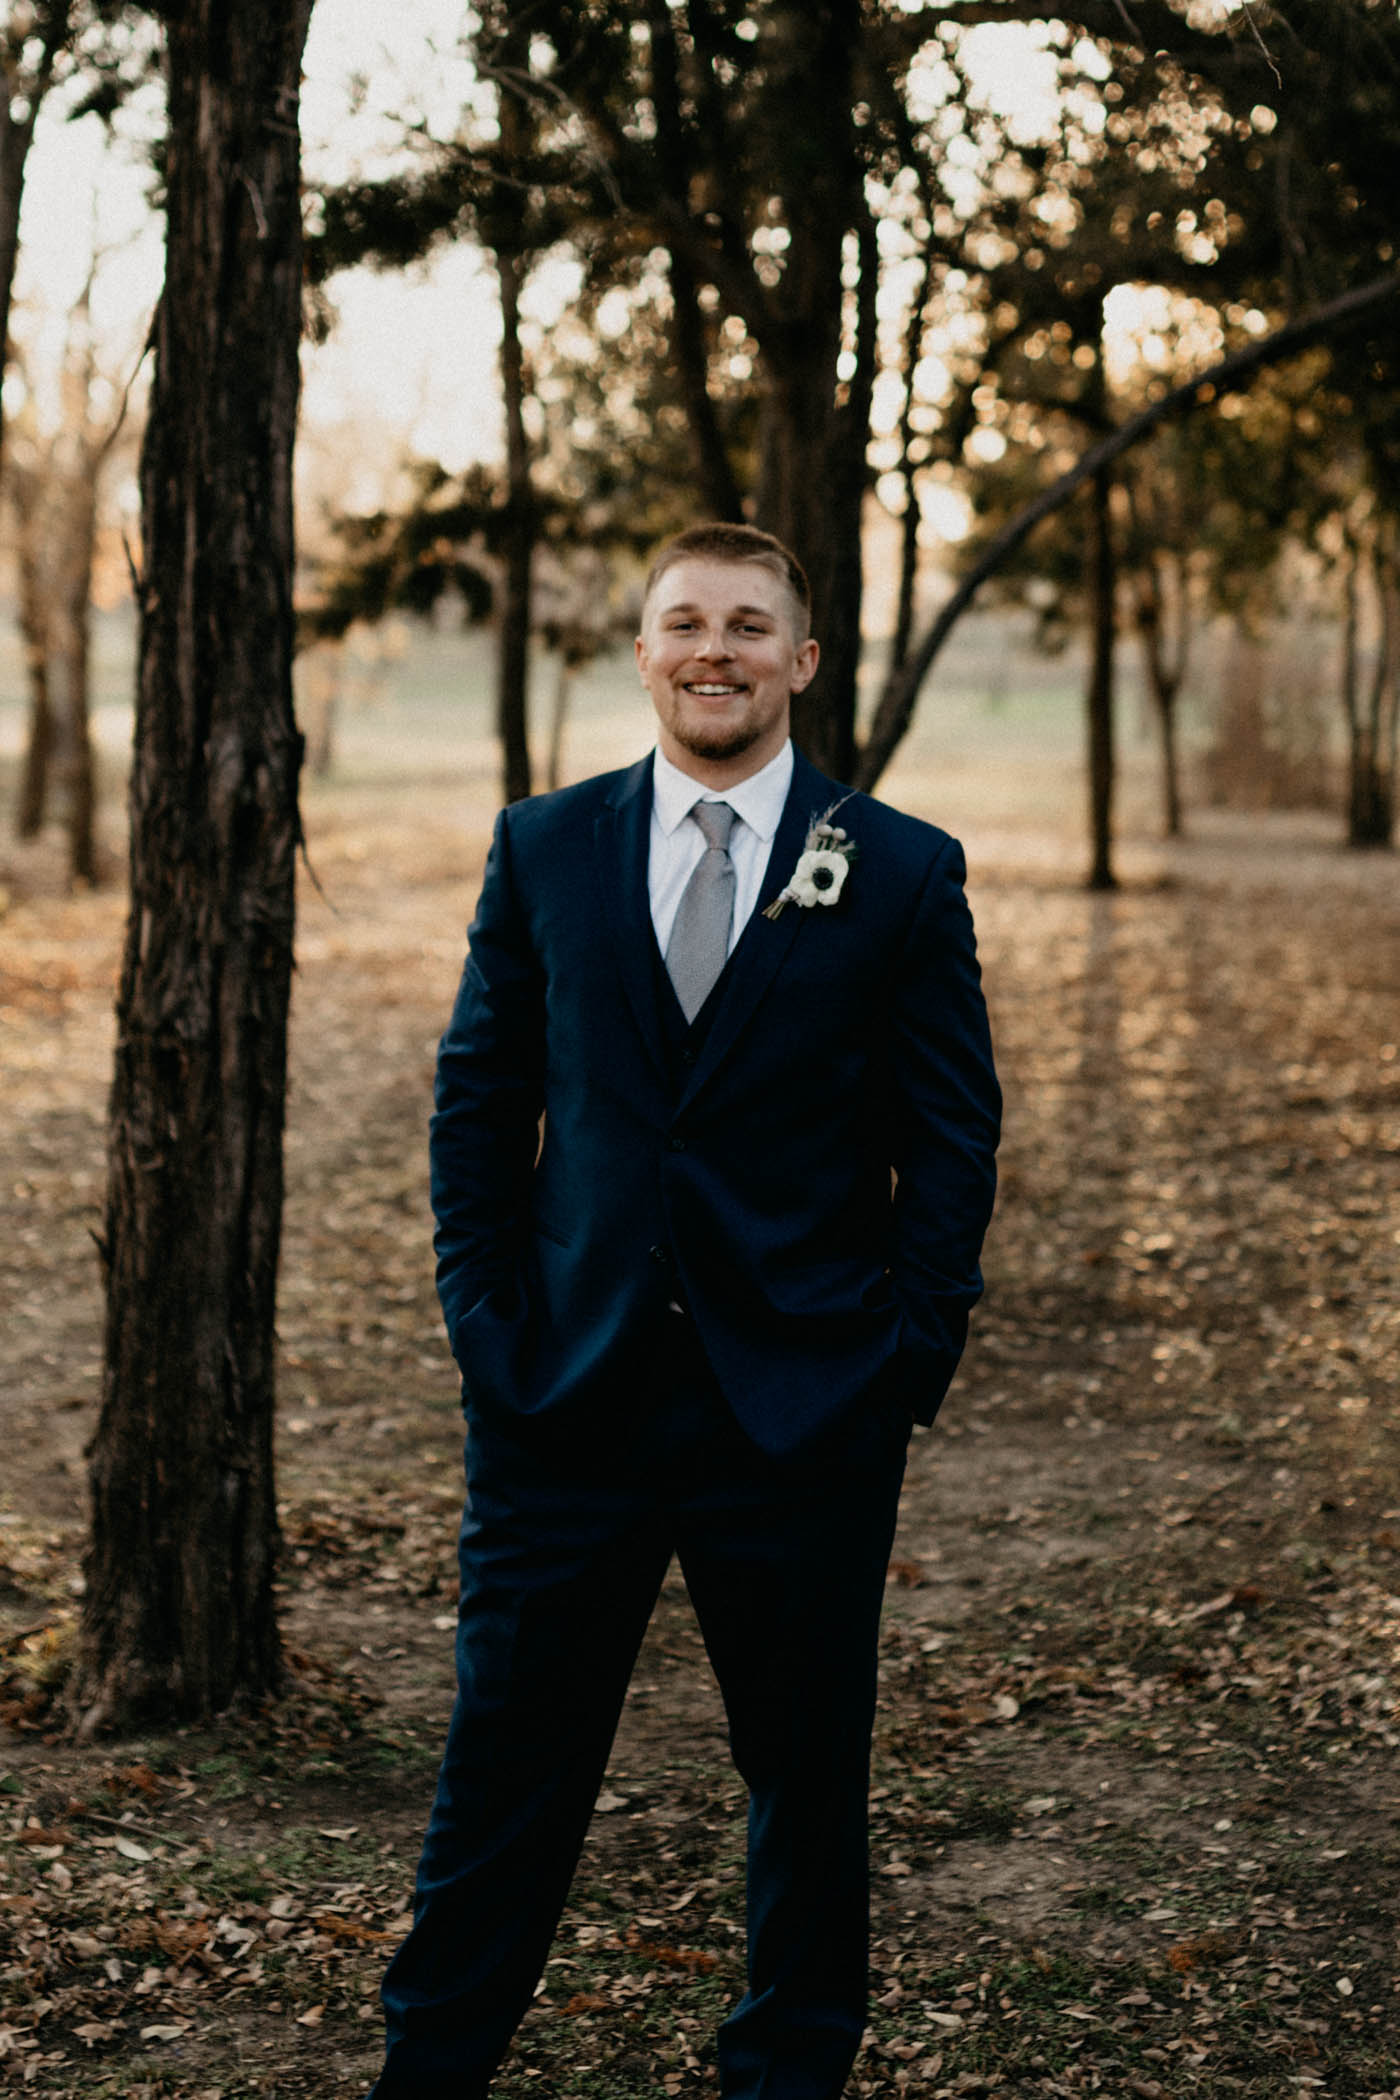 Portrait of groom on wedding day